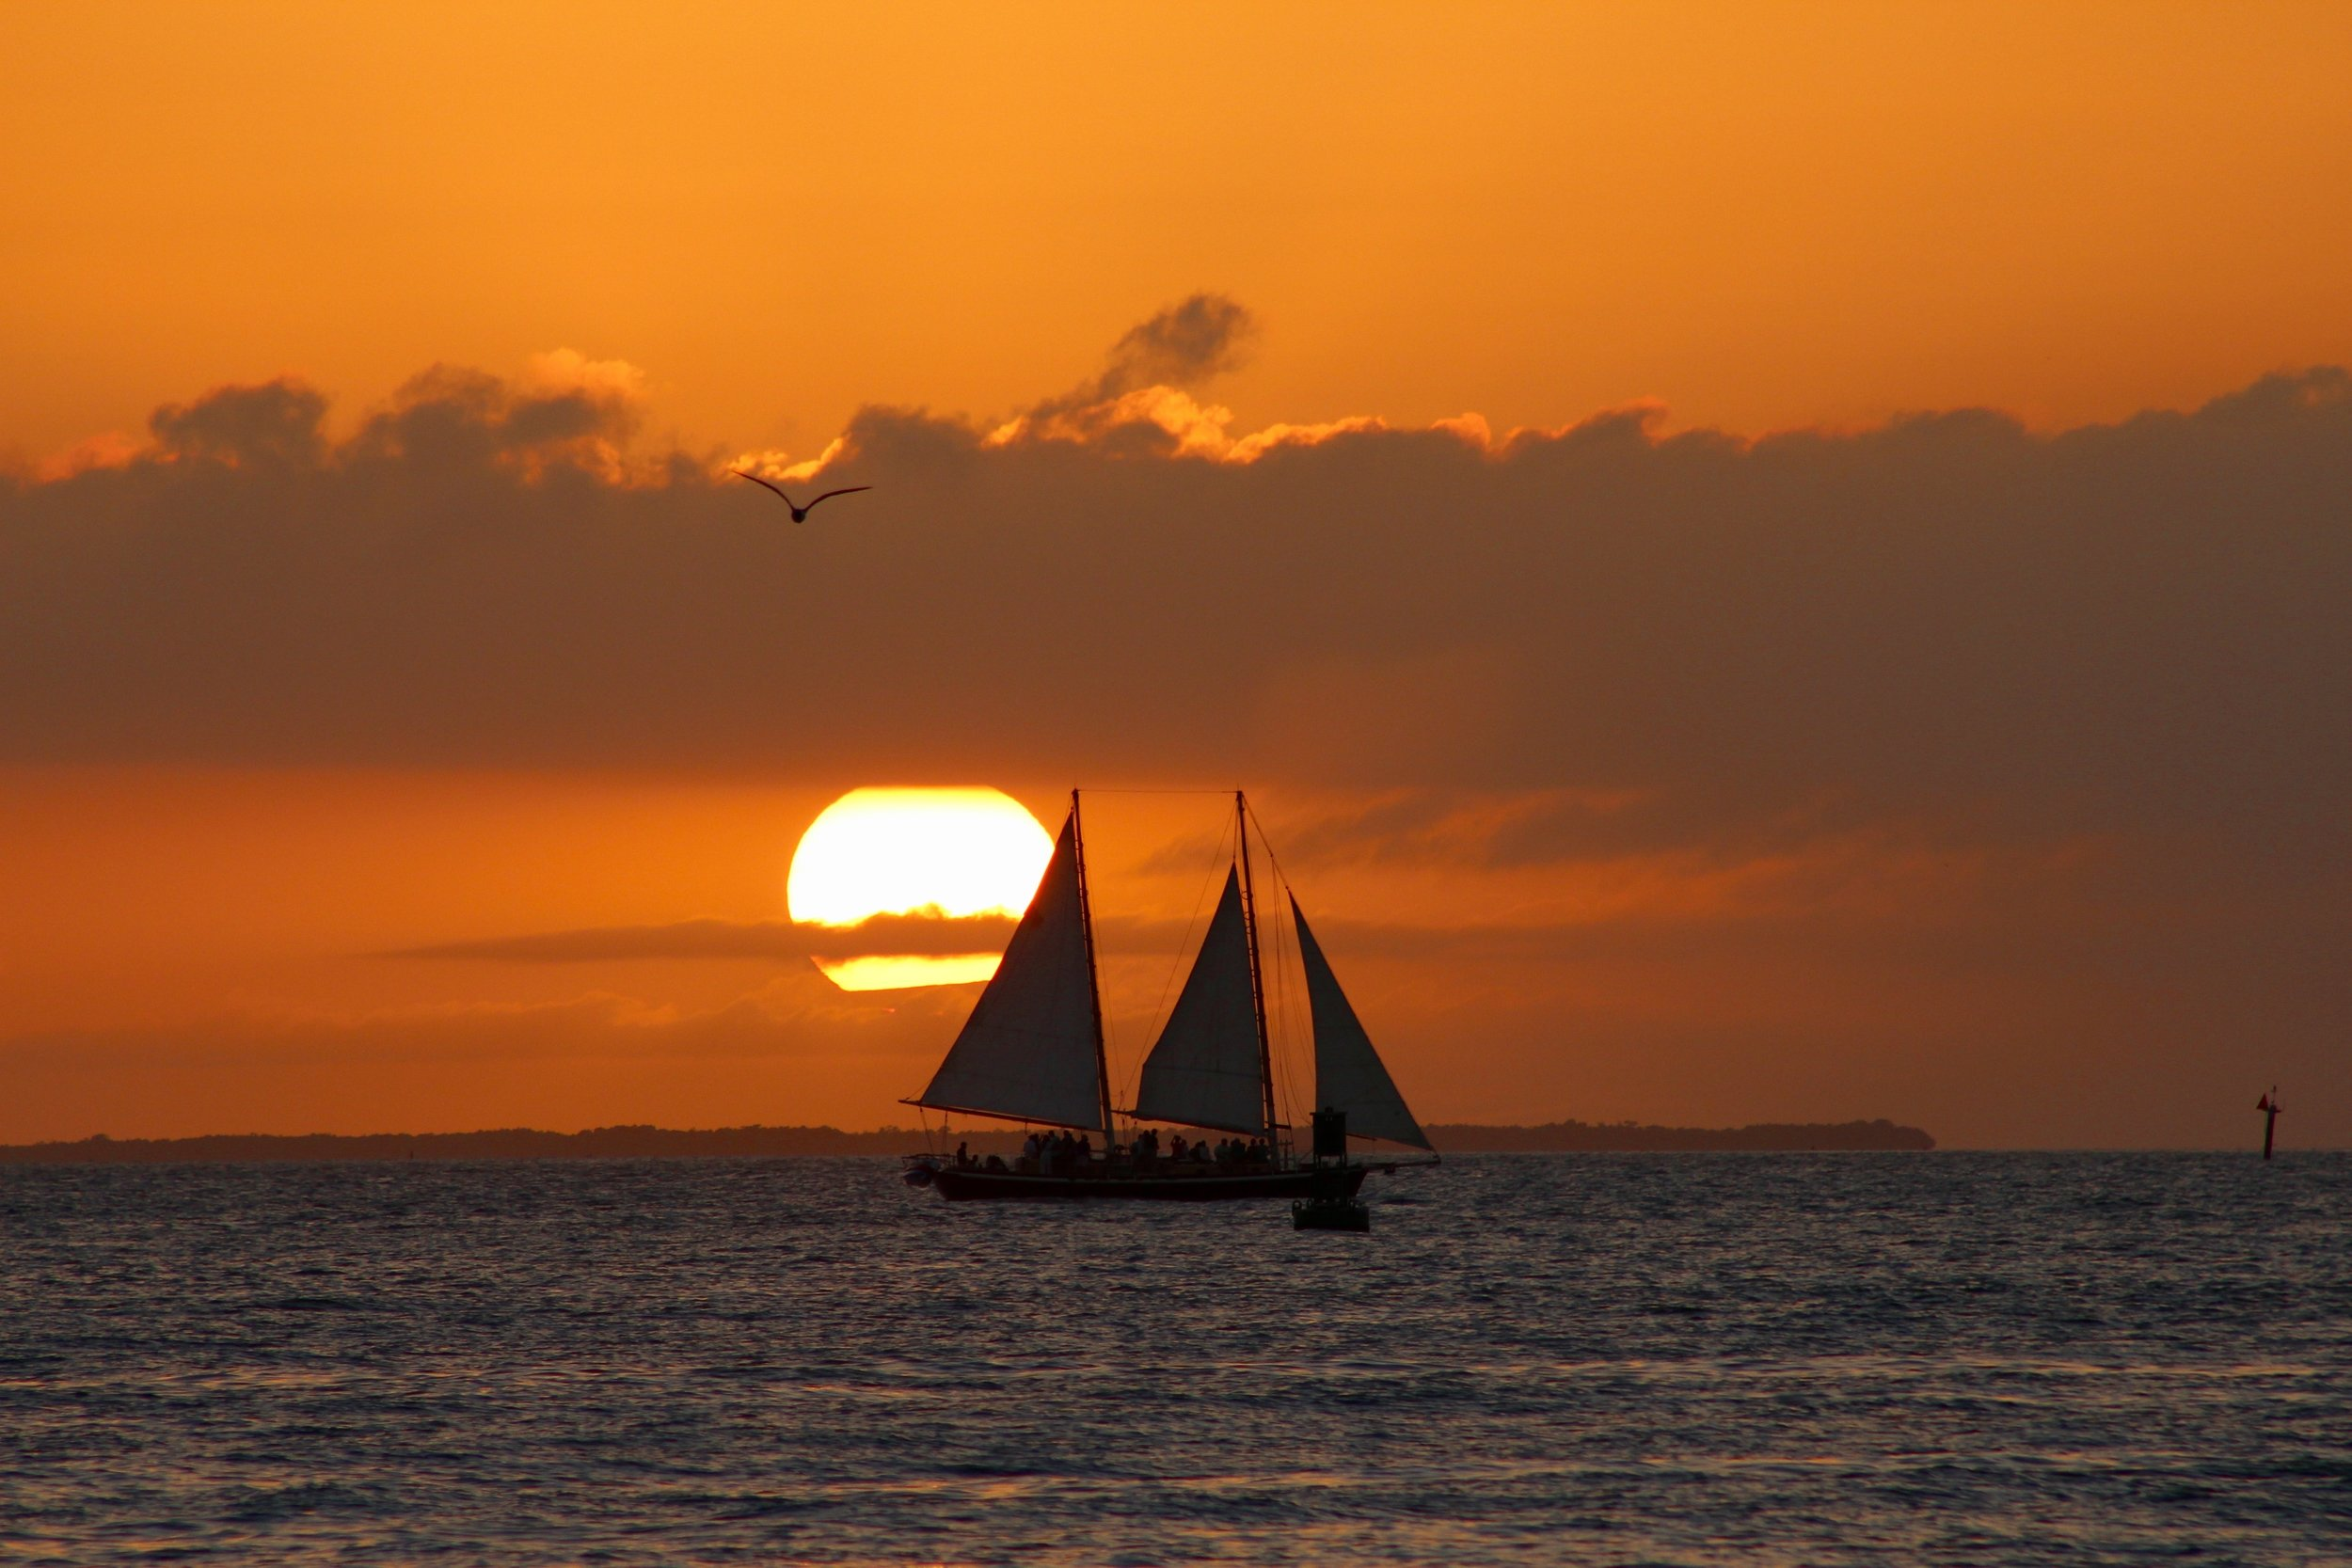 This sunset photo comes all the way from the Sunset Capital of the World, Mallory Square in Key West, Florida. The three-mast sailboat carries happy sunset cruisers, but also plays the role of a prop in the sunset photos of hundreds on land. While clouds streaked the sky, they did nothing but make the sunset that much more spectacular.